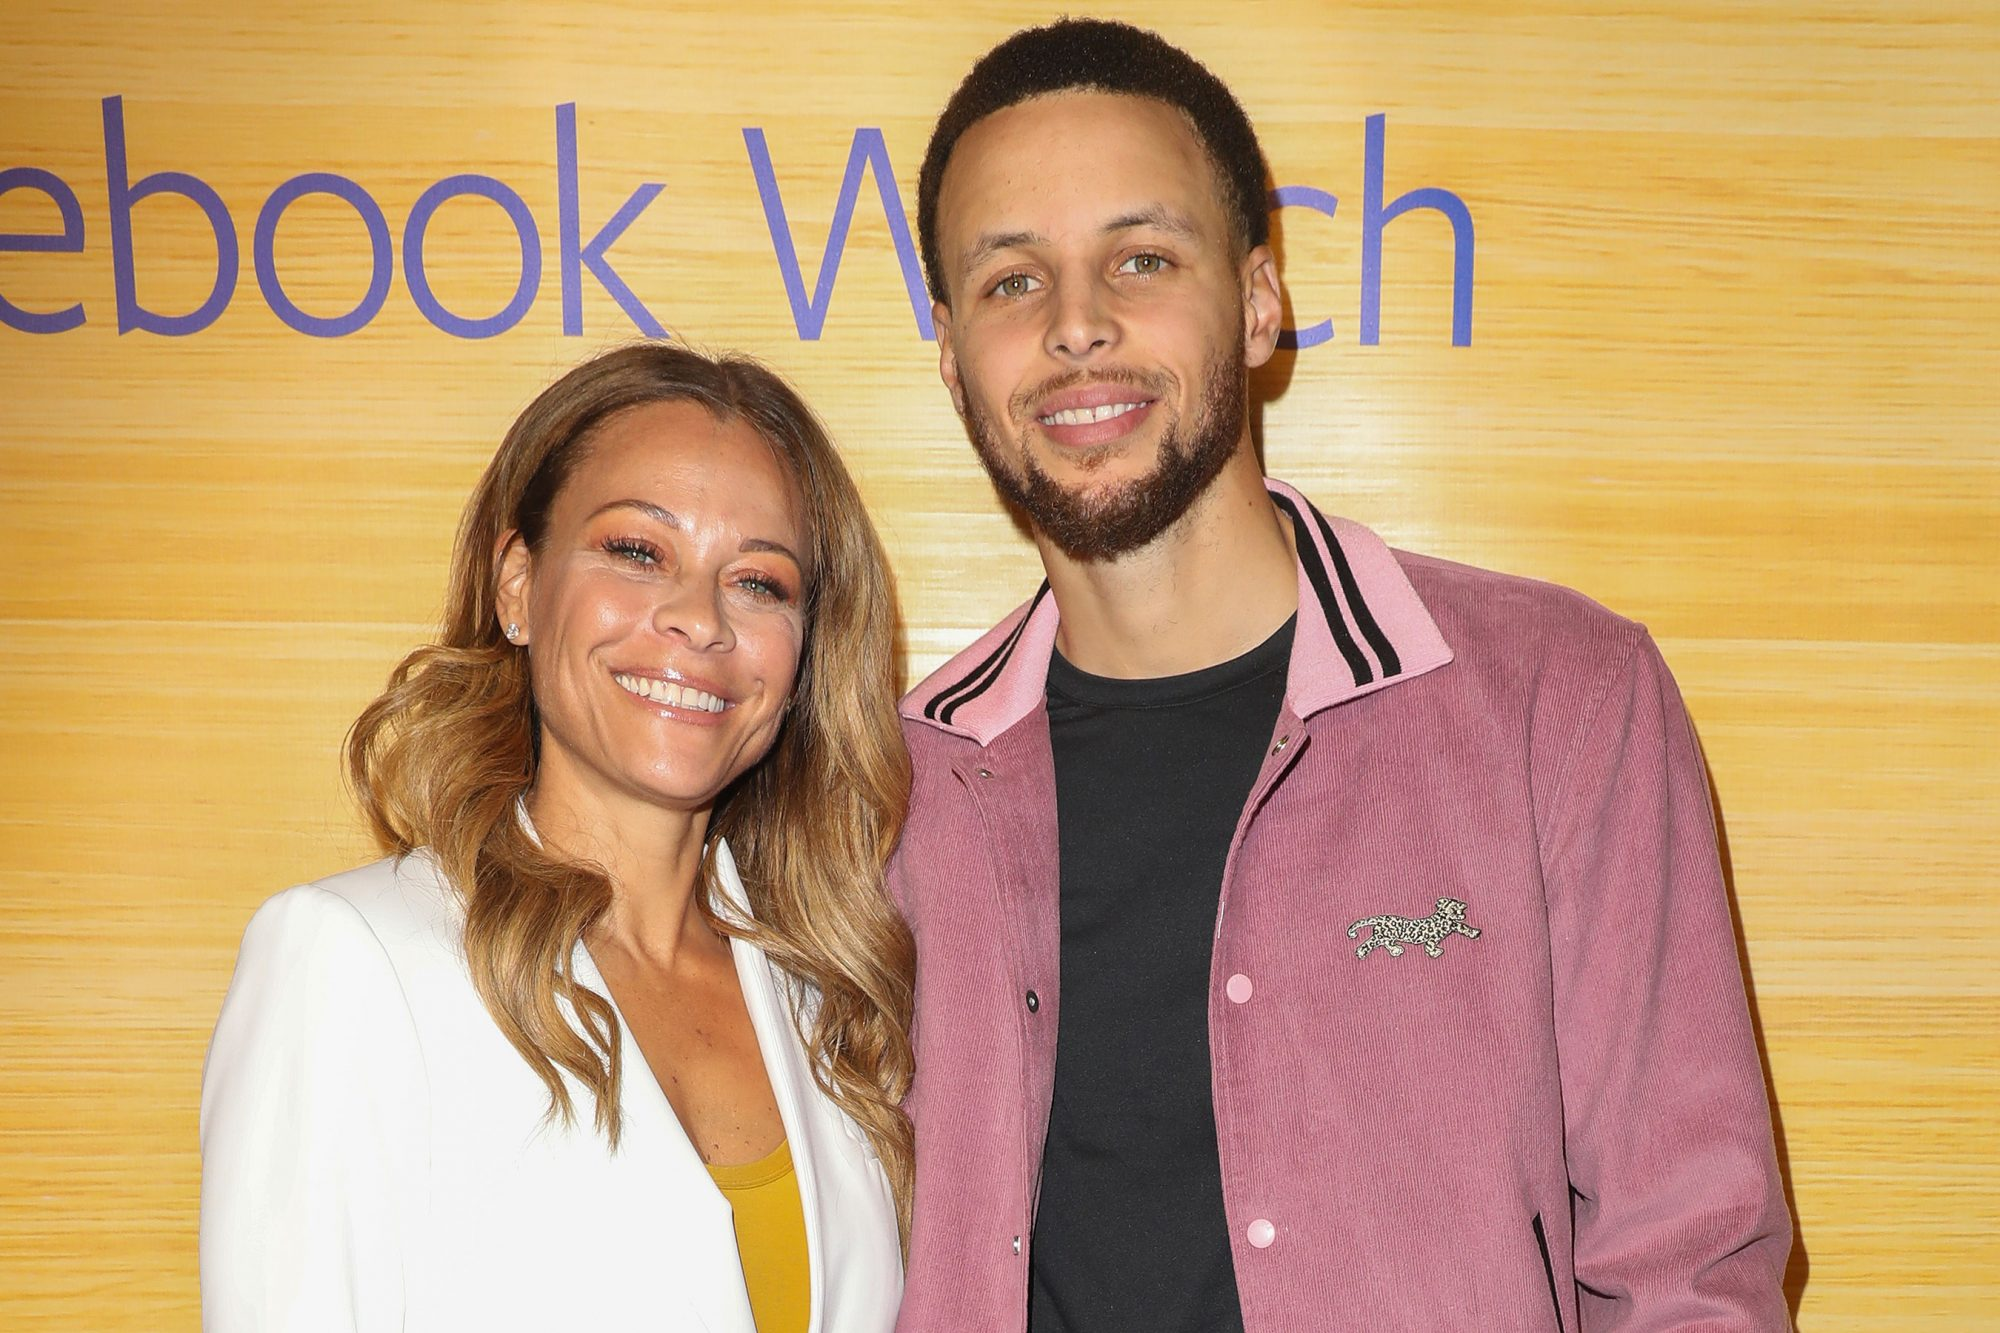 Steph Curry Says He Gets His Grit From His Mom People Com